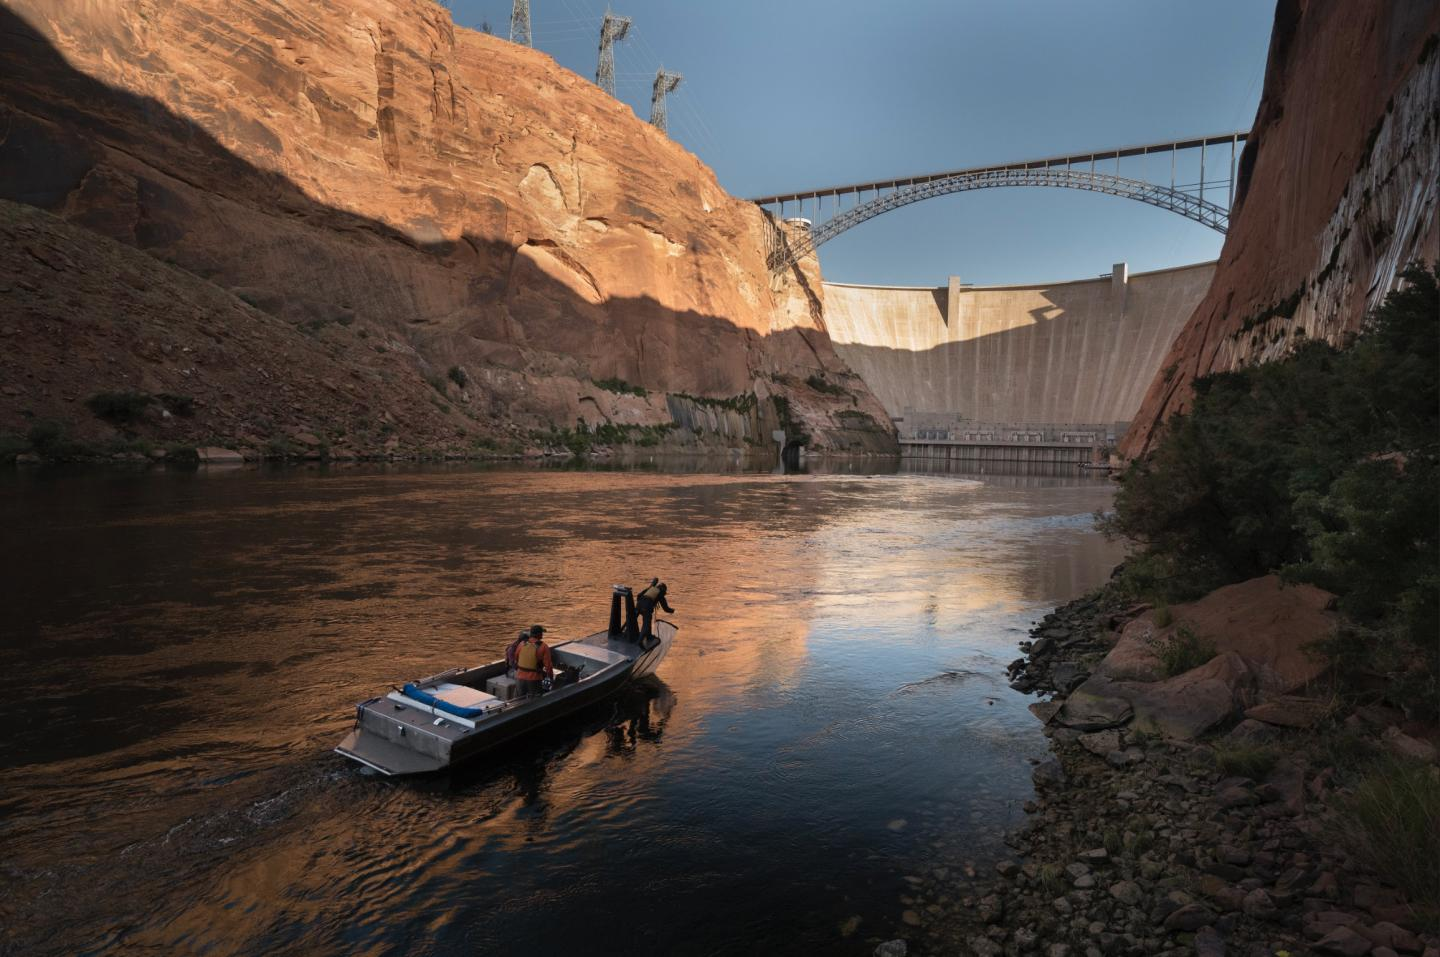 Researchers in Boat in Front of Dam